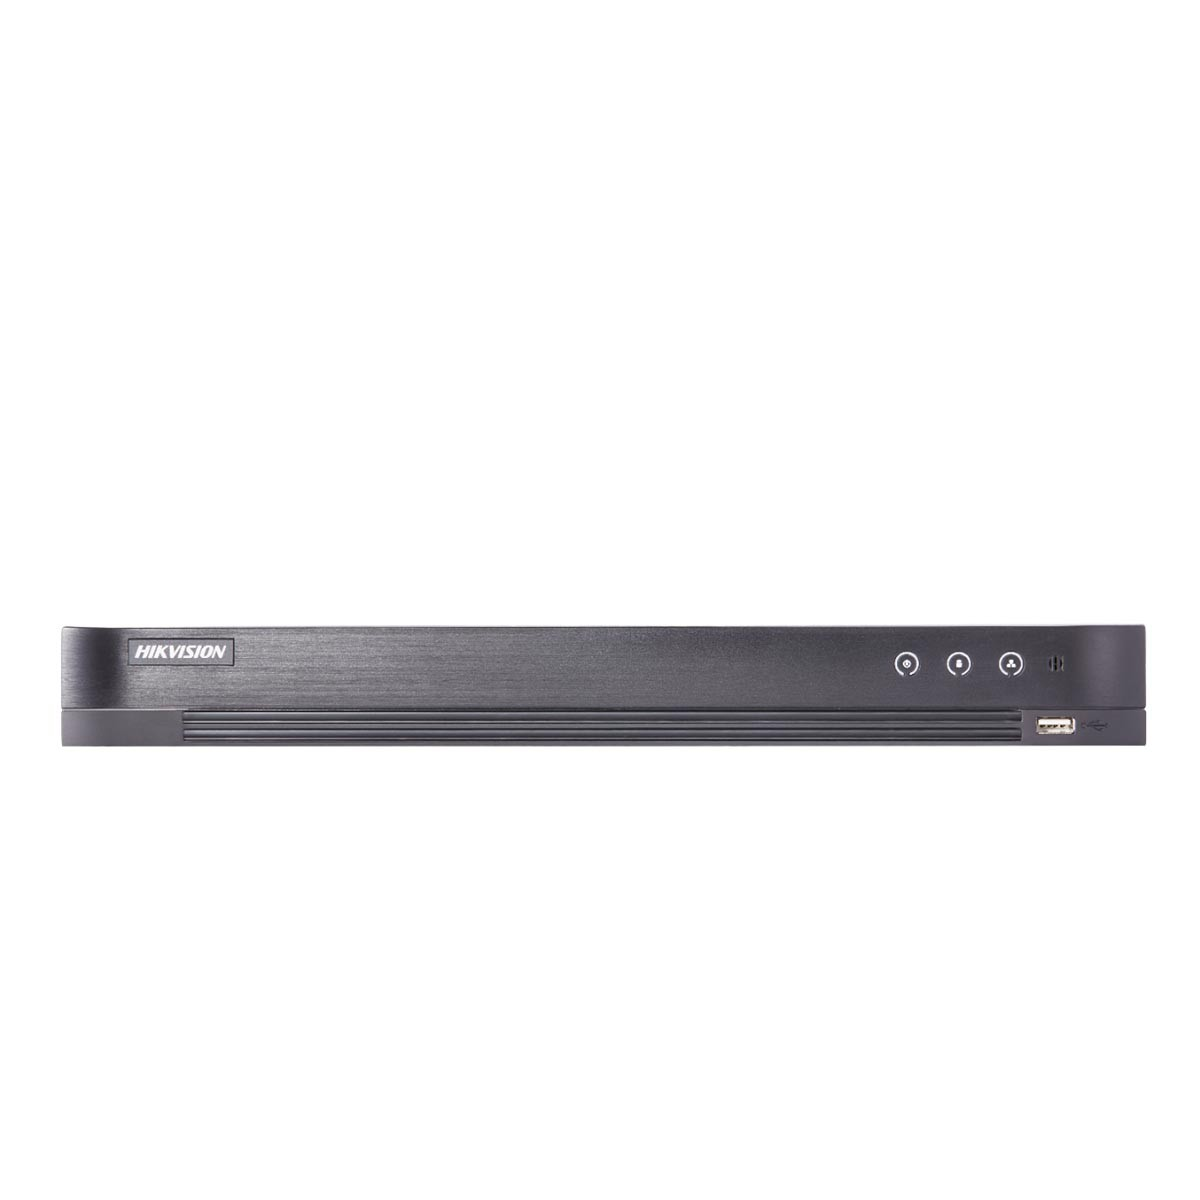 DVR STAND ALONE HIKVISION 2MP 32 CANAIS FULL HD 1080P DS-7232HQHI-K2